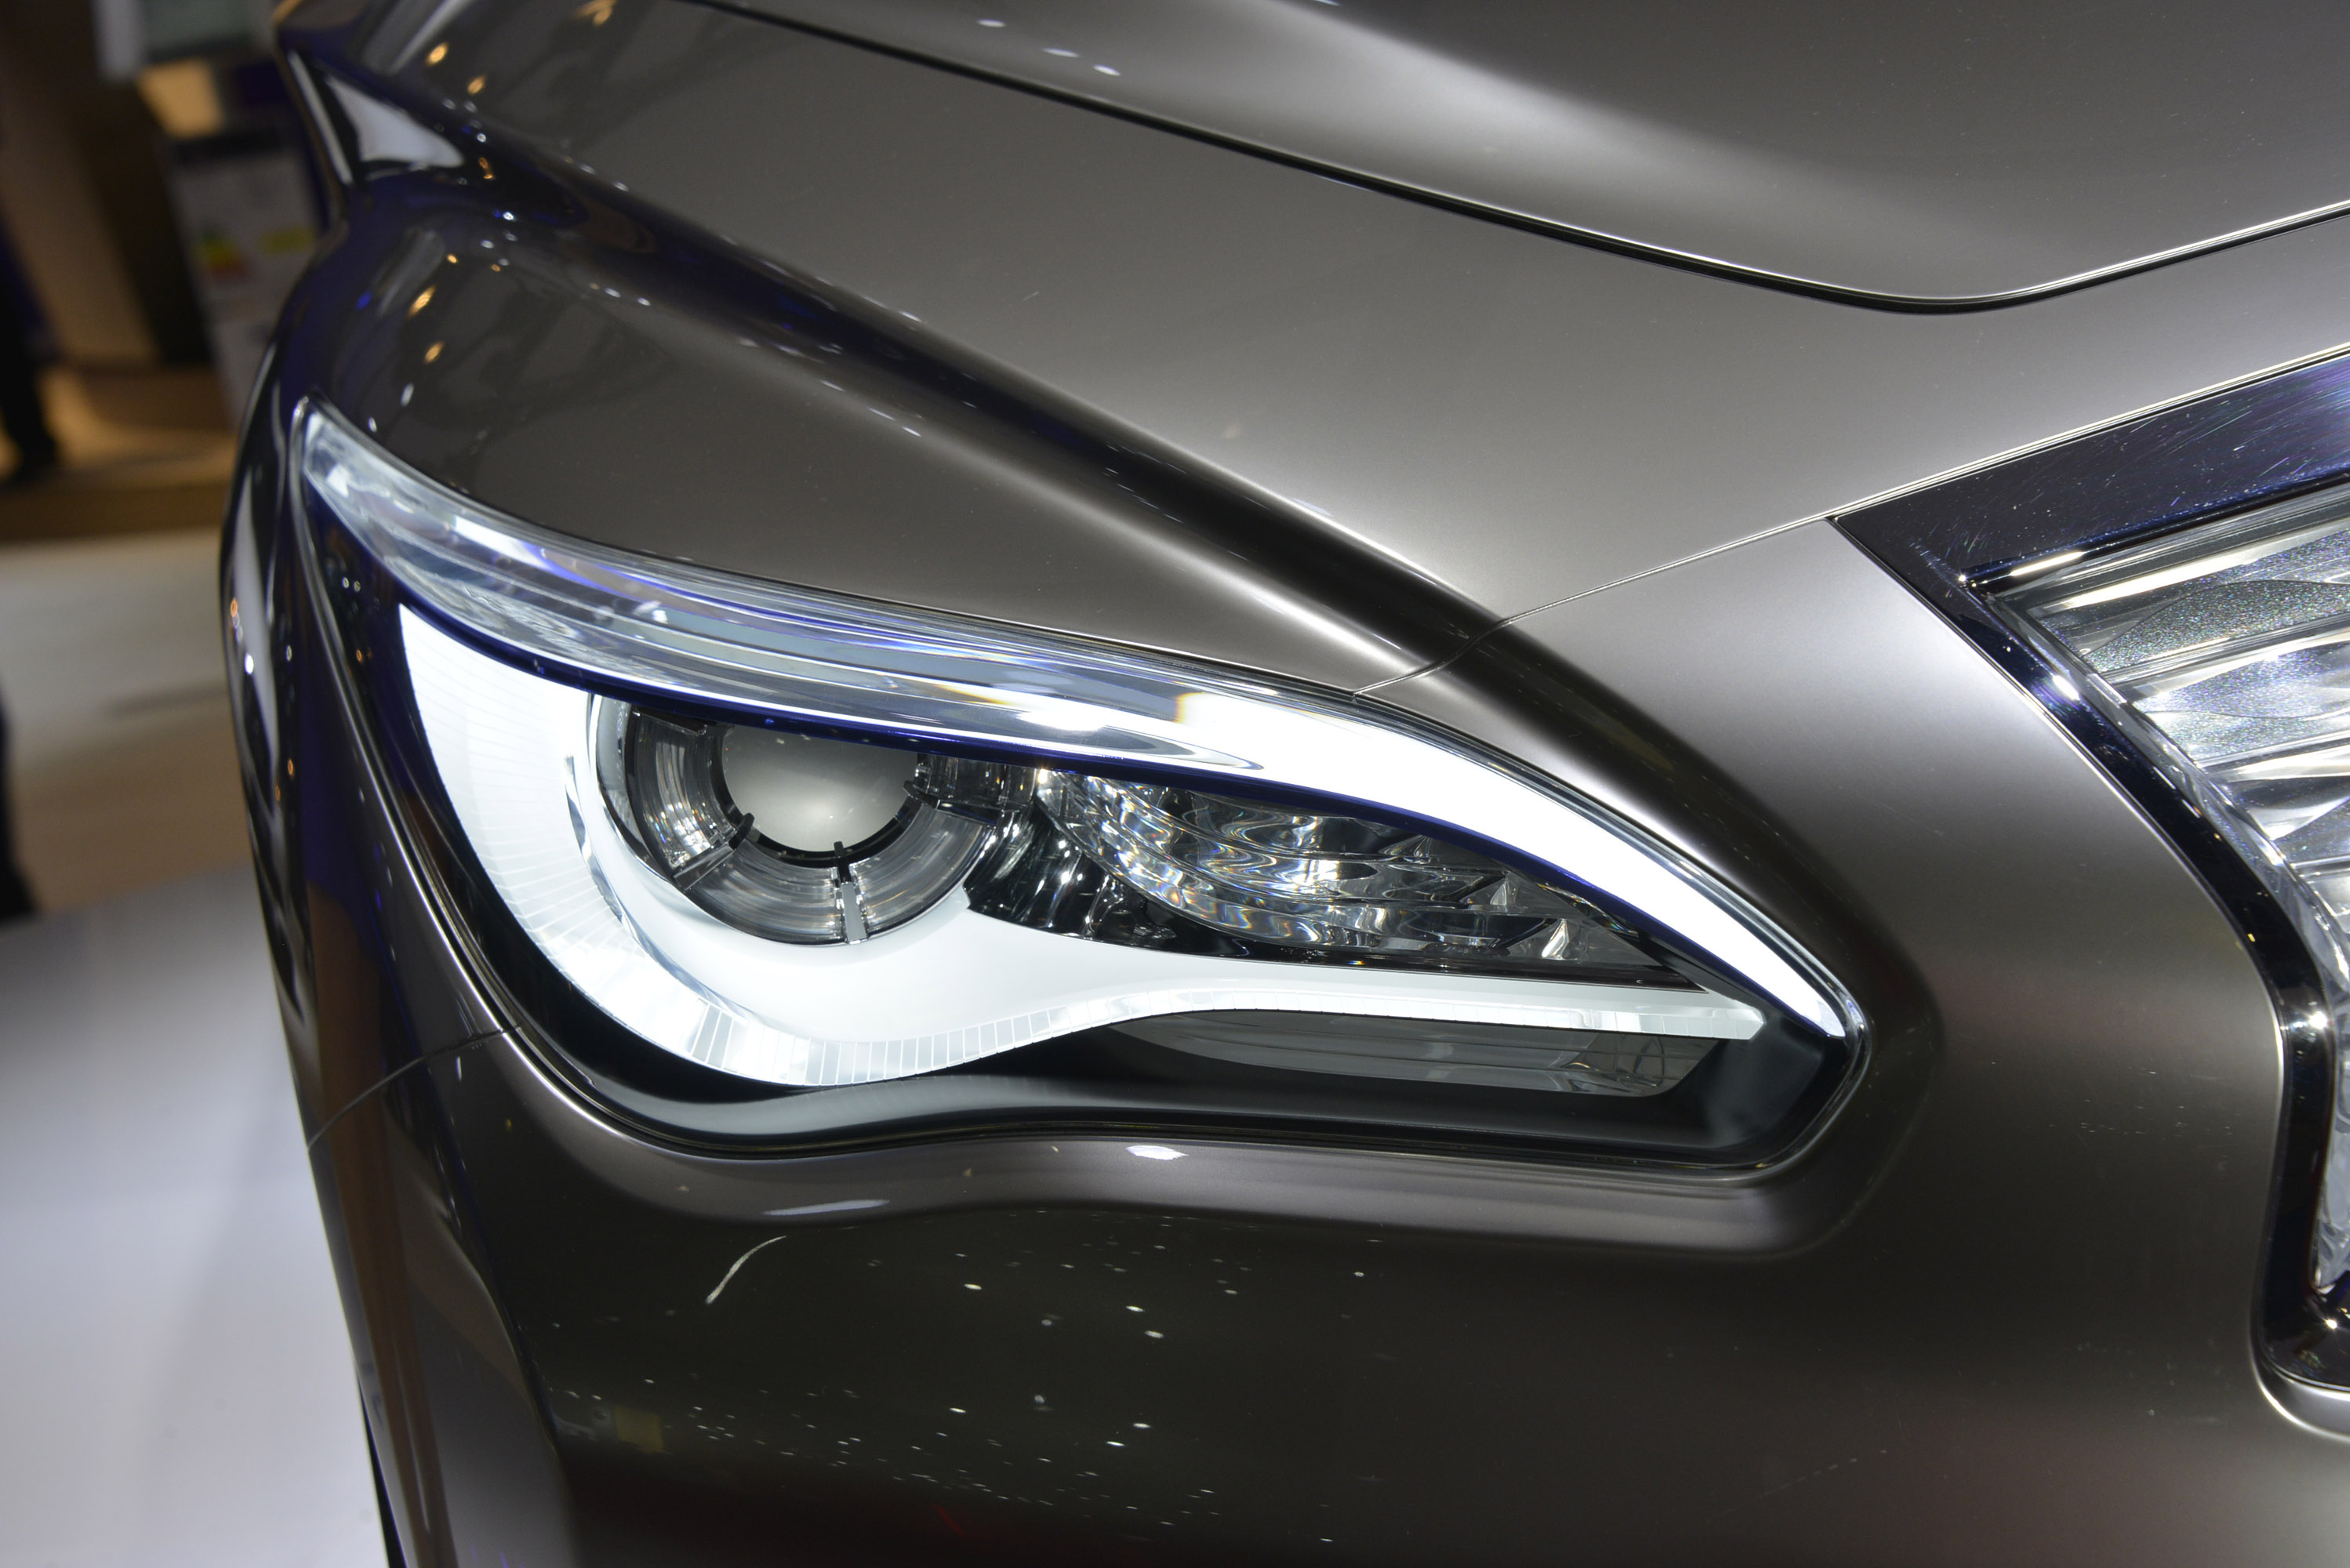 Infiniti le concept paris 2012 hd pictures automobilesreview thumbnail image 5 of this gallery vanachro Image collections